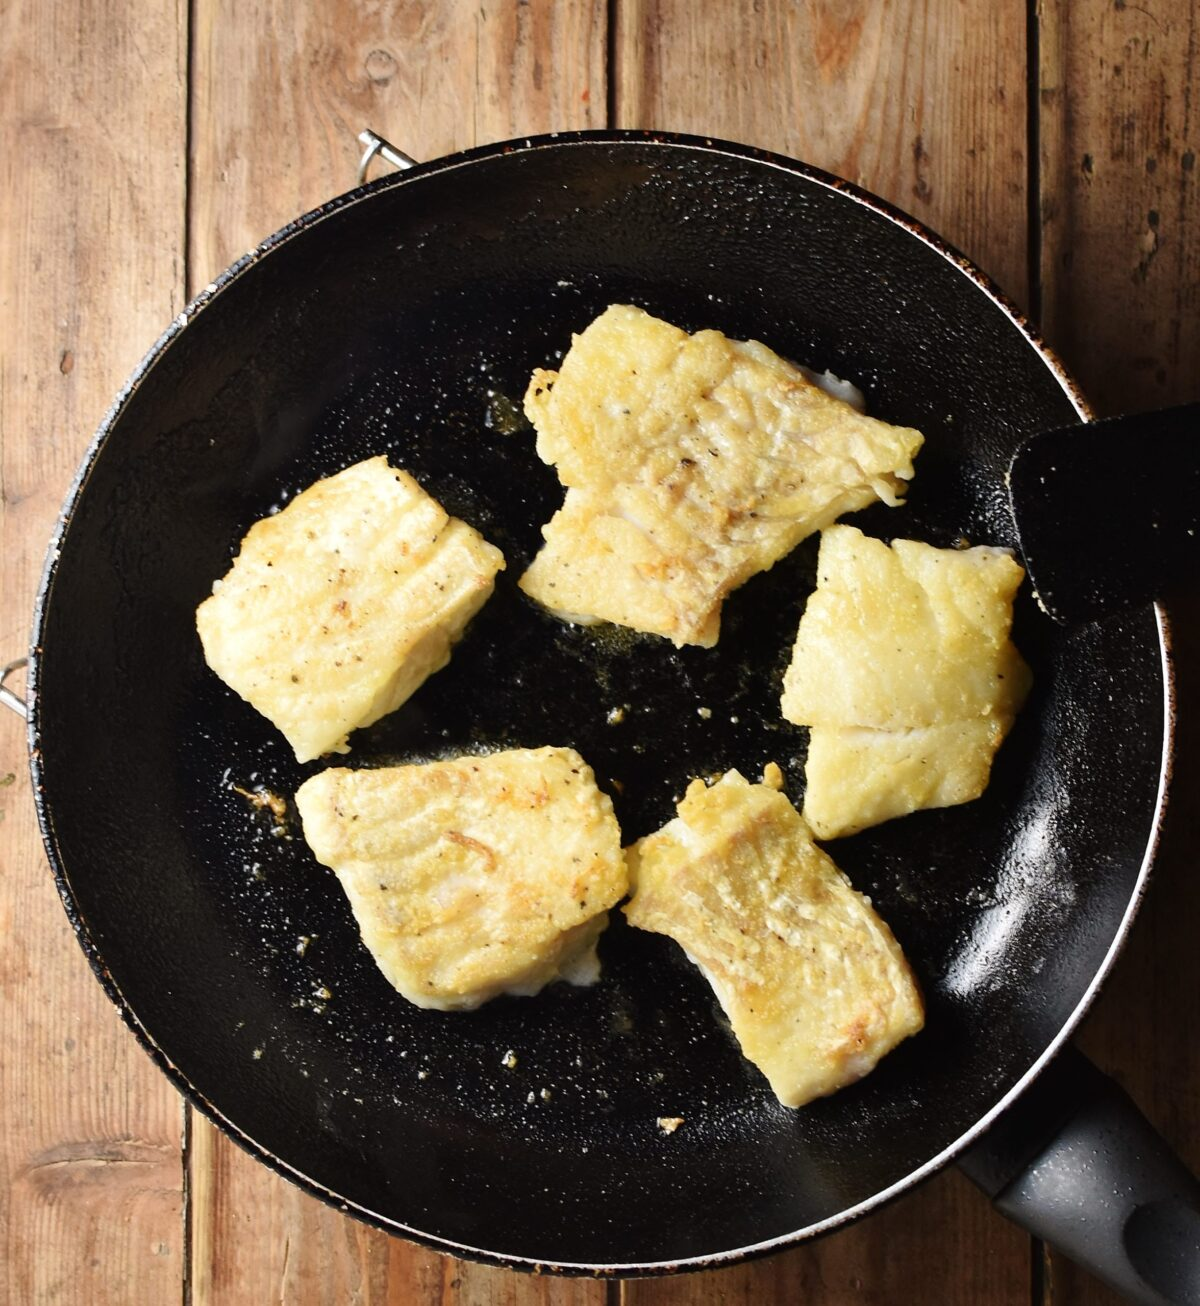 Fried fish fillets in skillet.